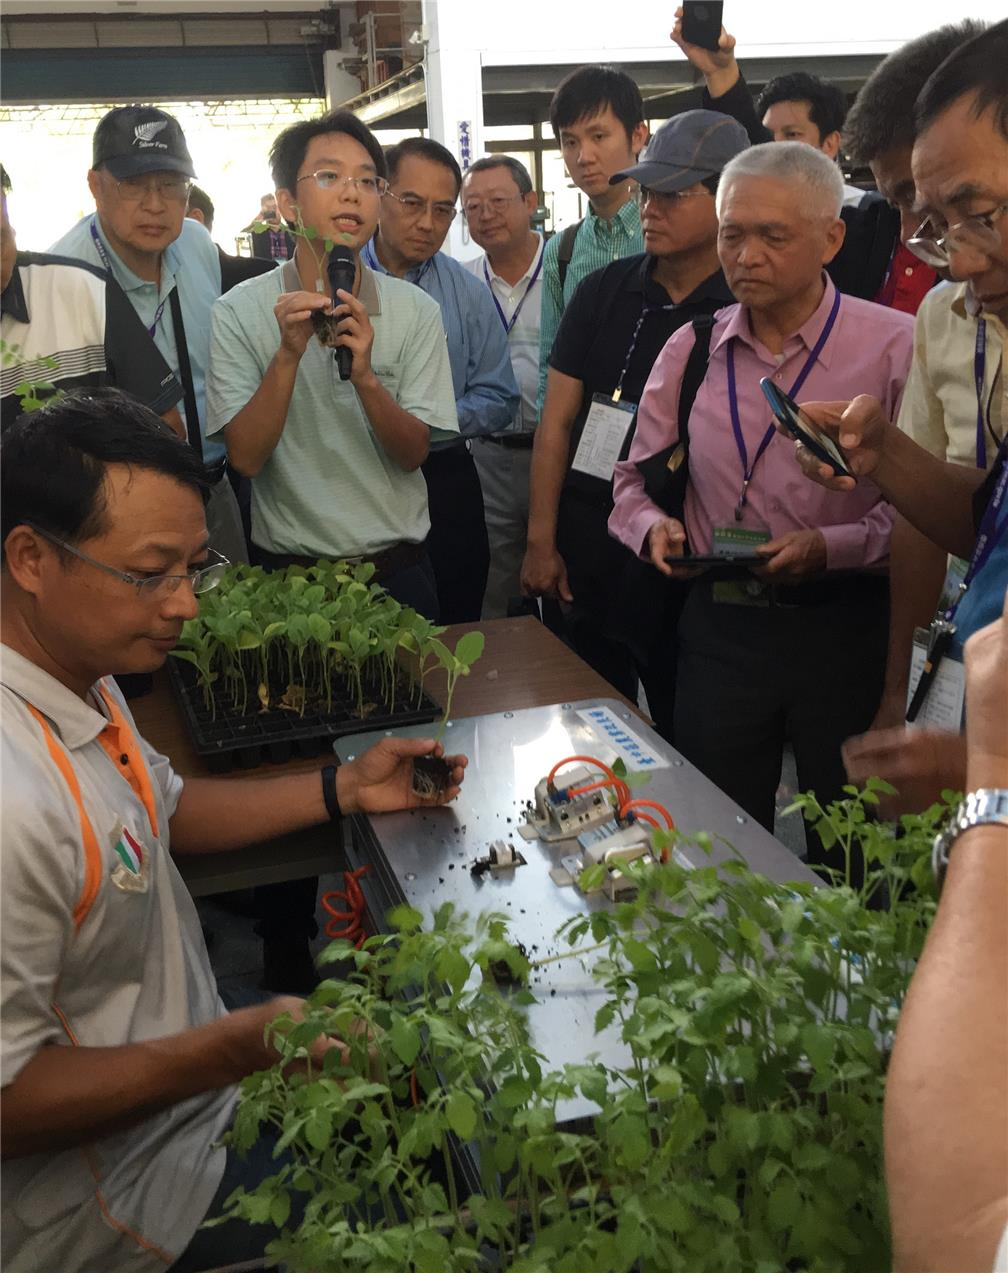 A visit to Taichung District Agricultural Research and Extension Station